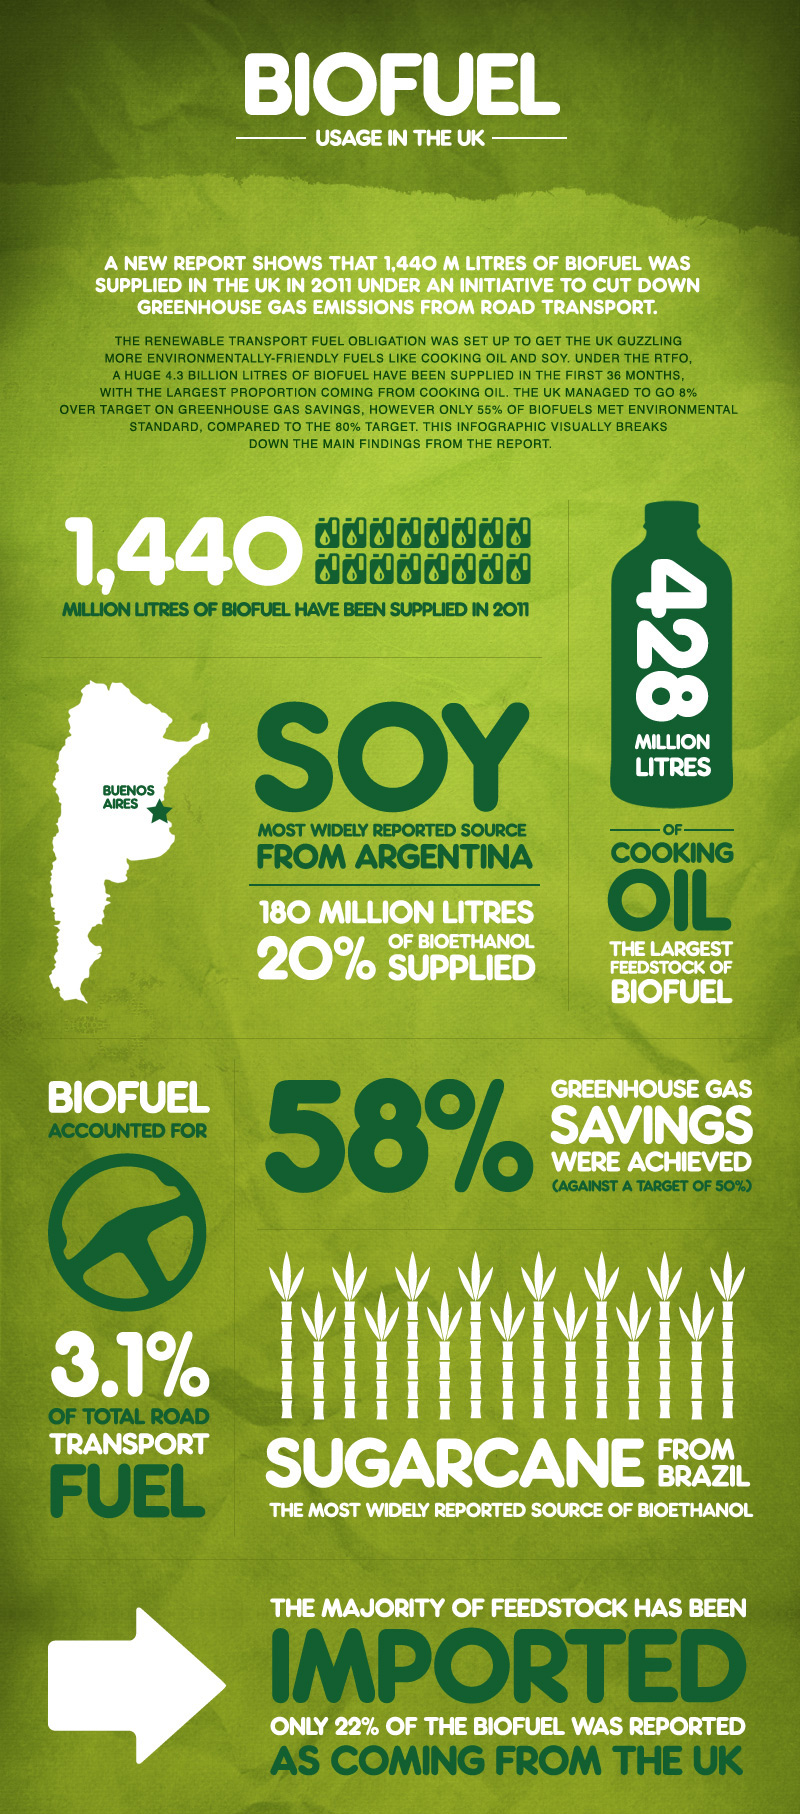 Biofuel usage in the UK (Infographic)